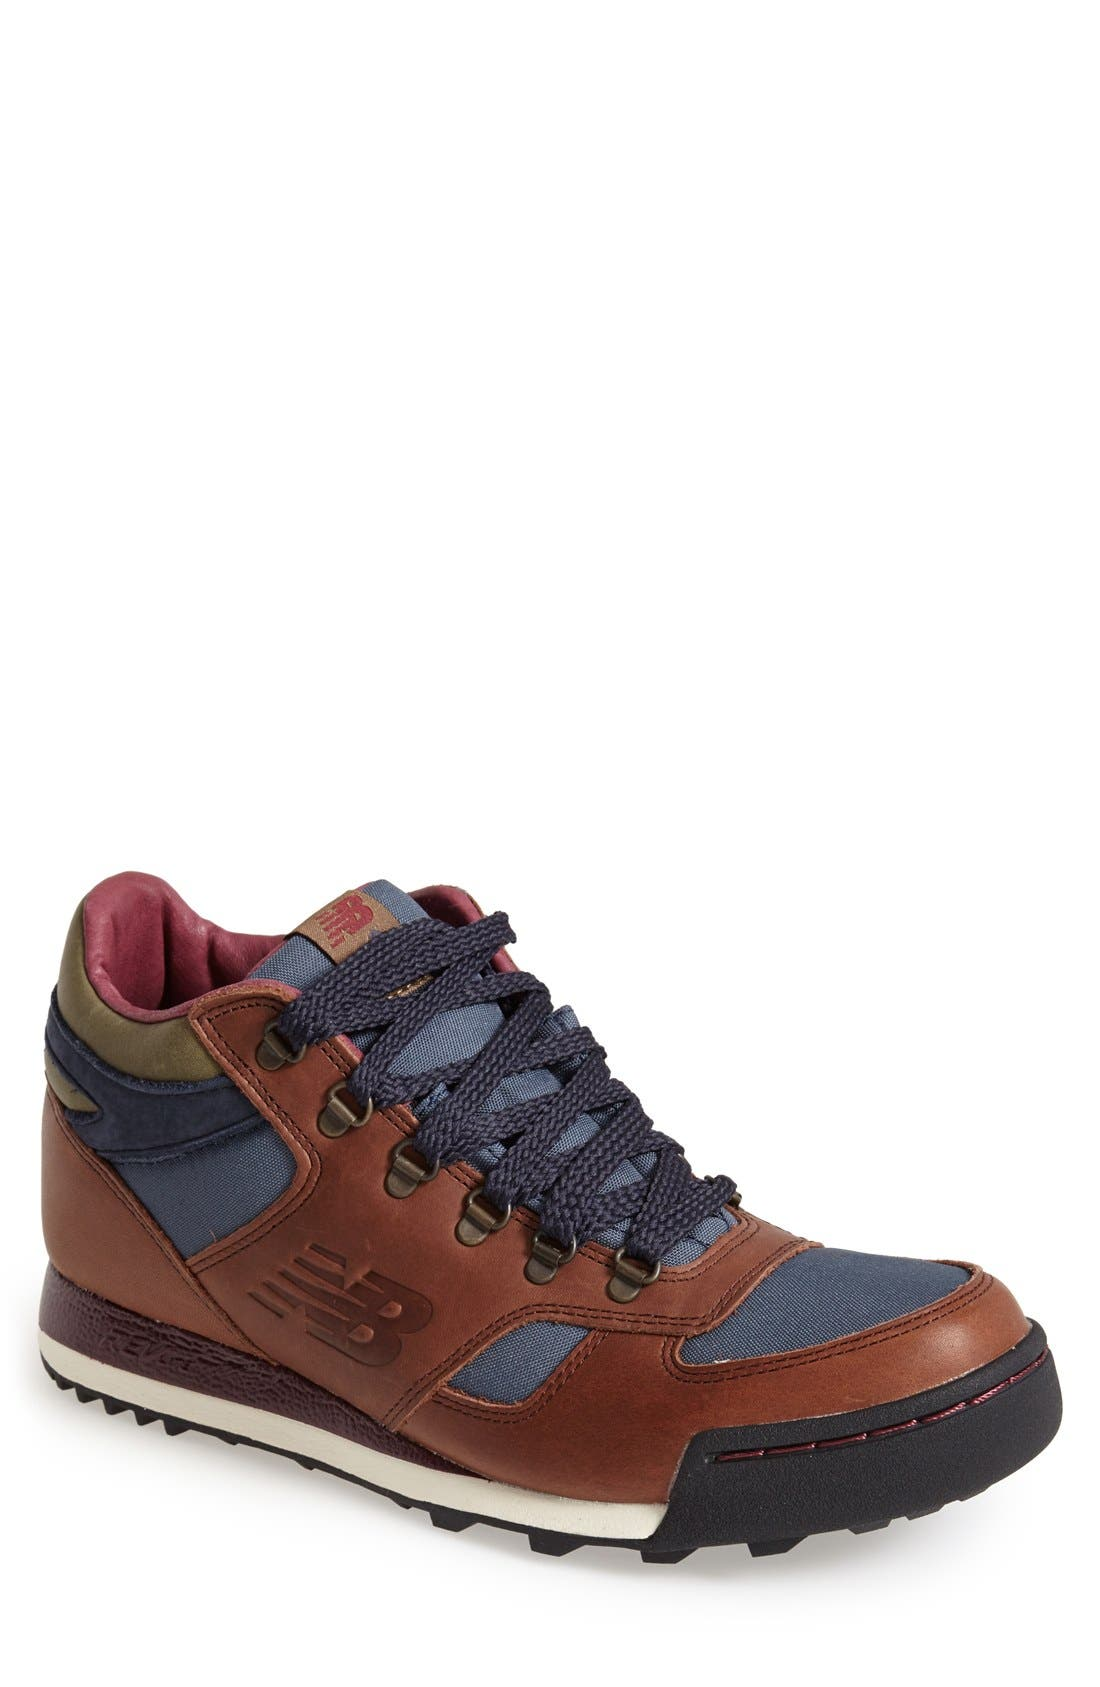 NEW BALANCE, '710 - Elevation Collection' Sneaker, Main thumbnail 1, color, 200